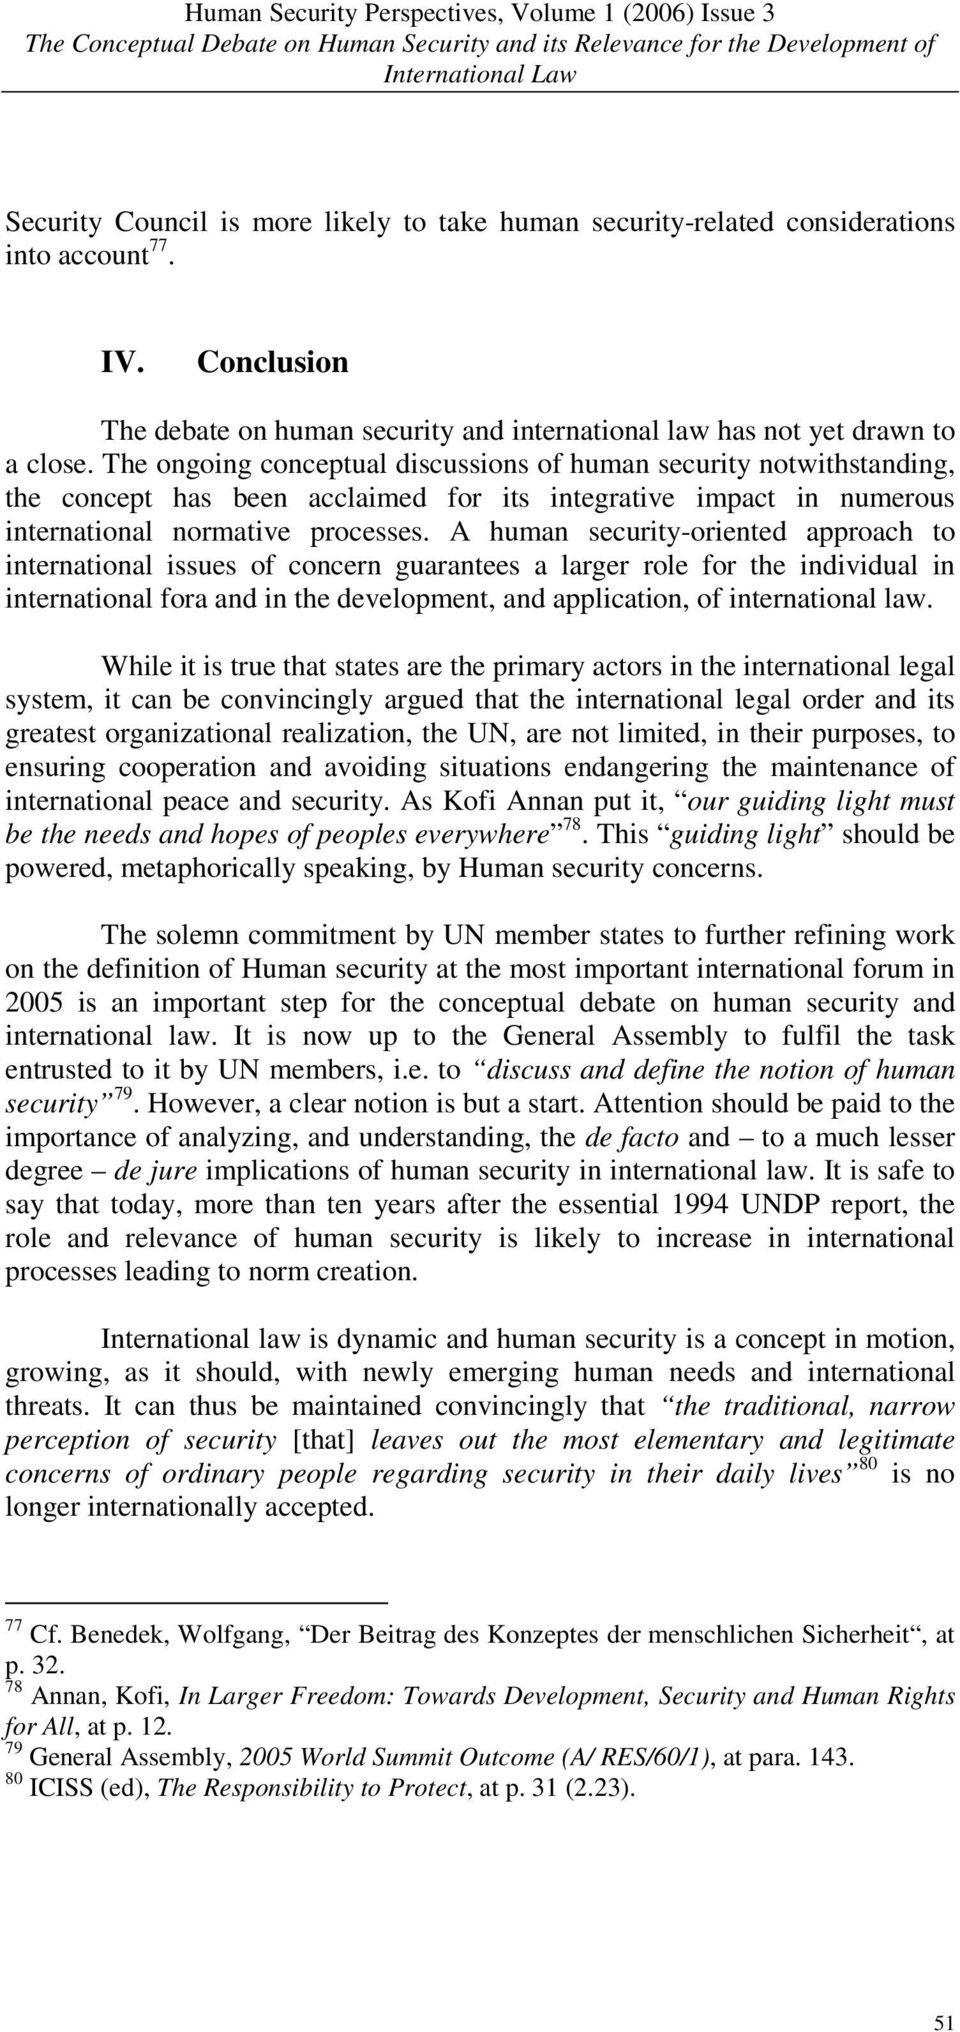 A human security-oriented approach to international issues of concern guarantees a larger role for the individual in international fora and in the development, and application, of international law.